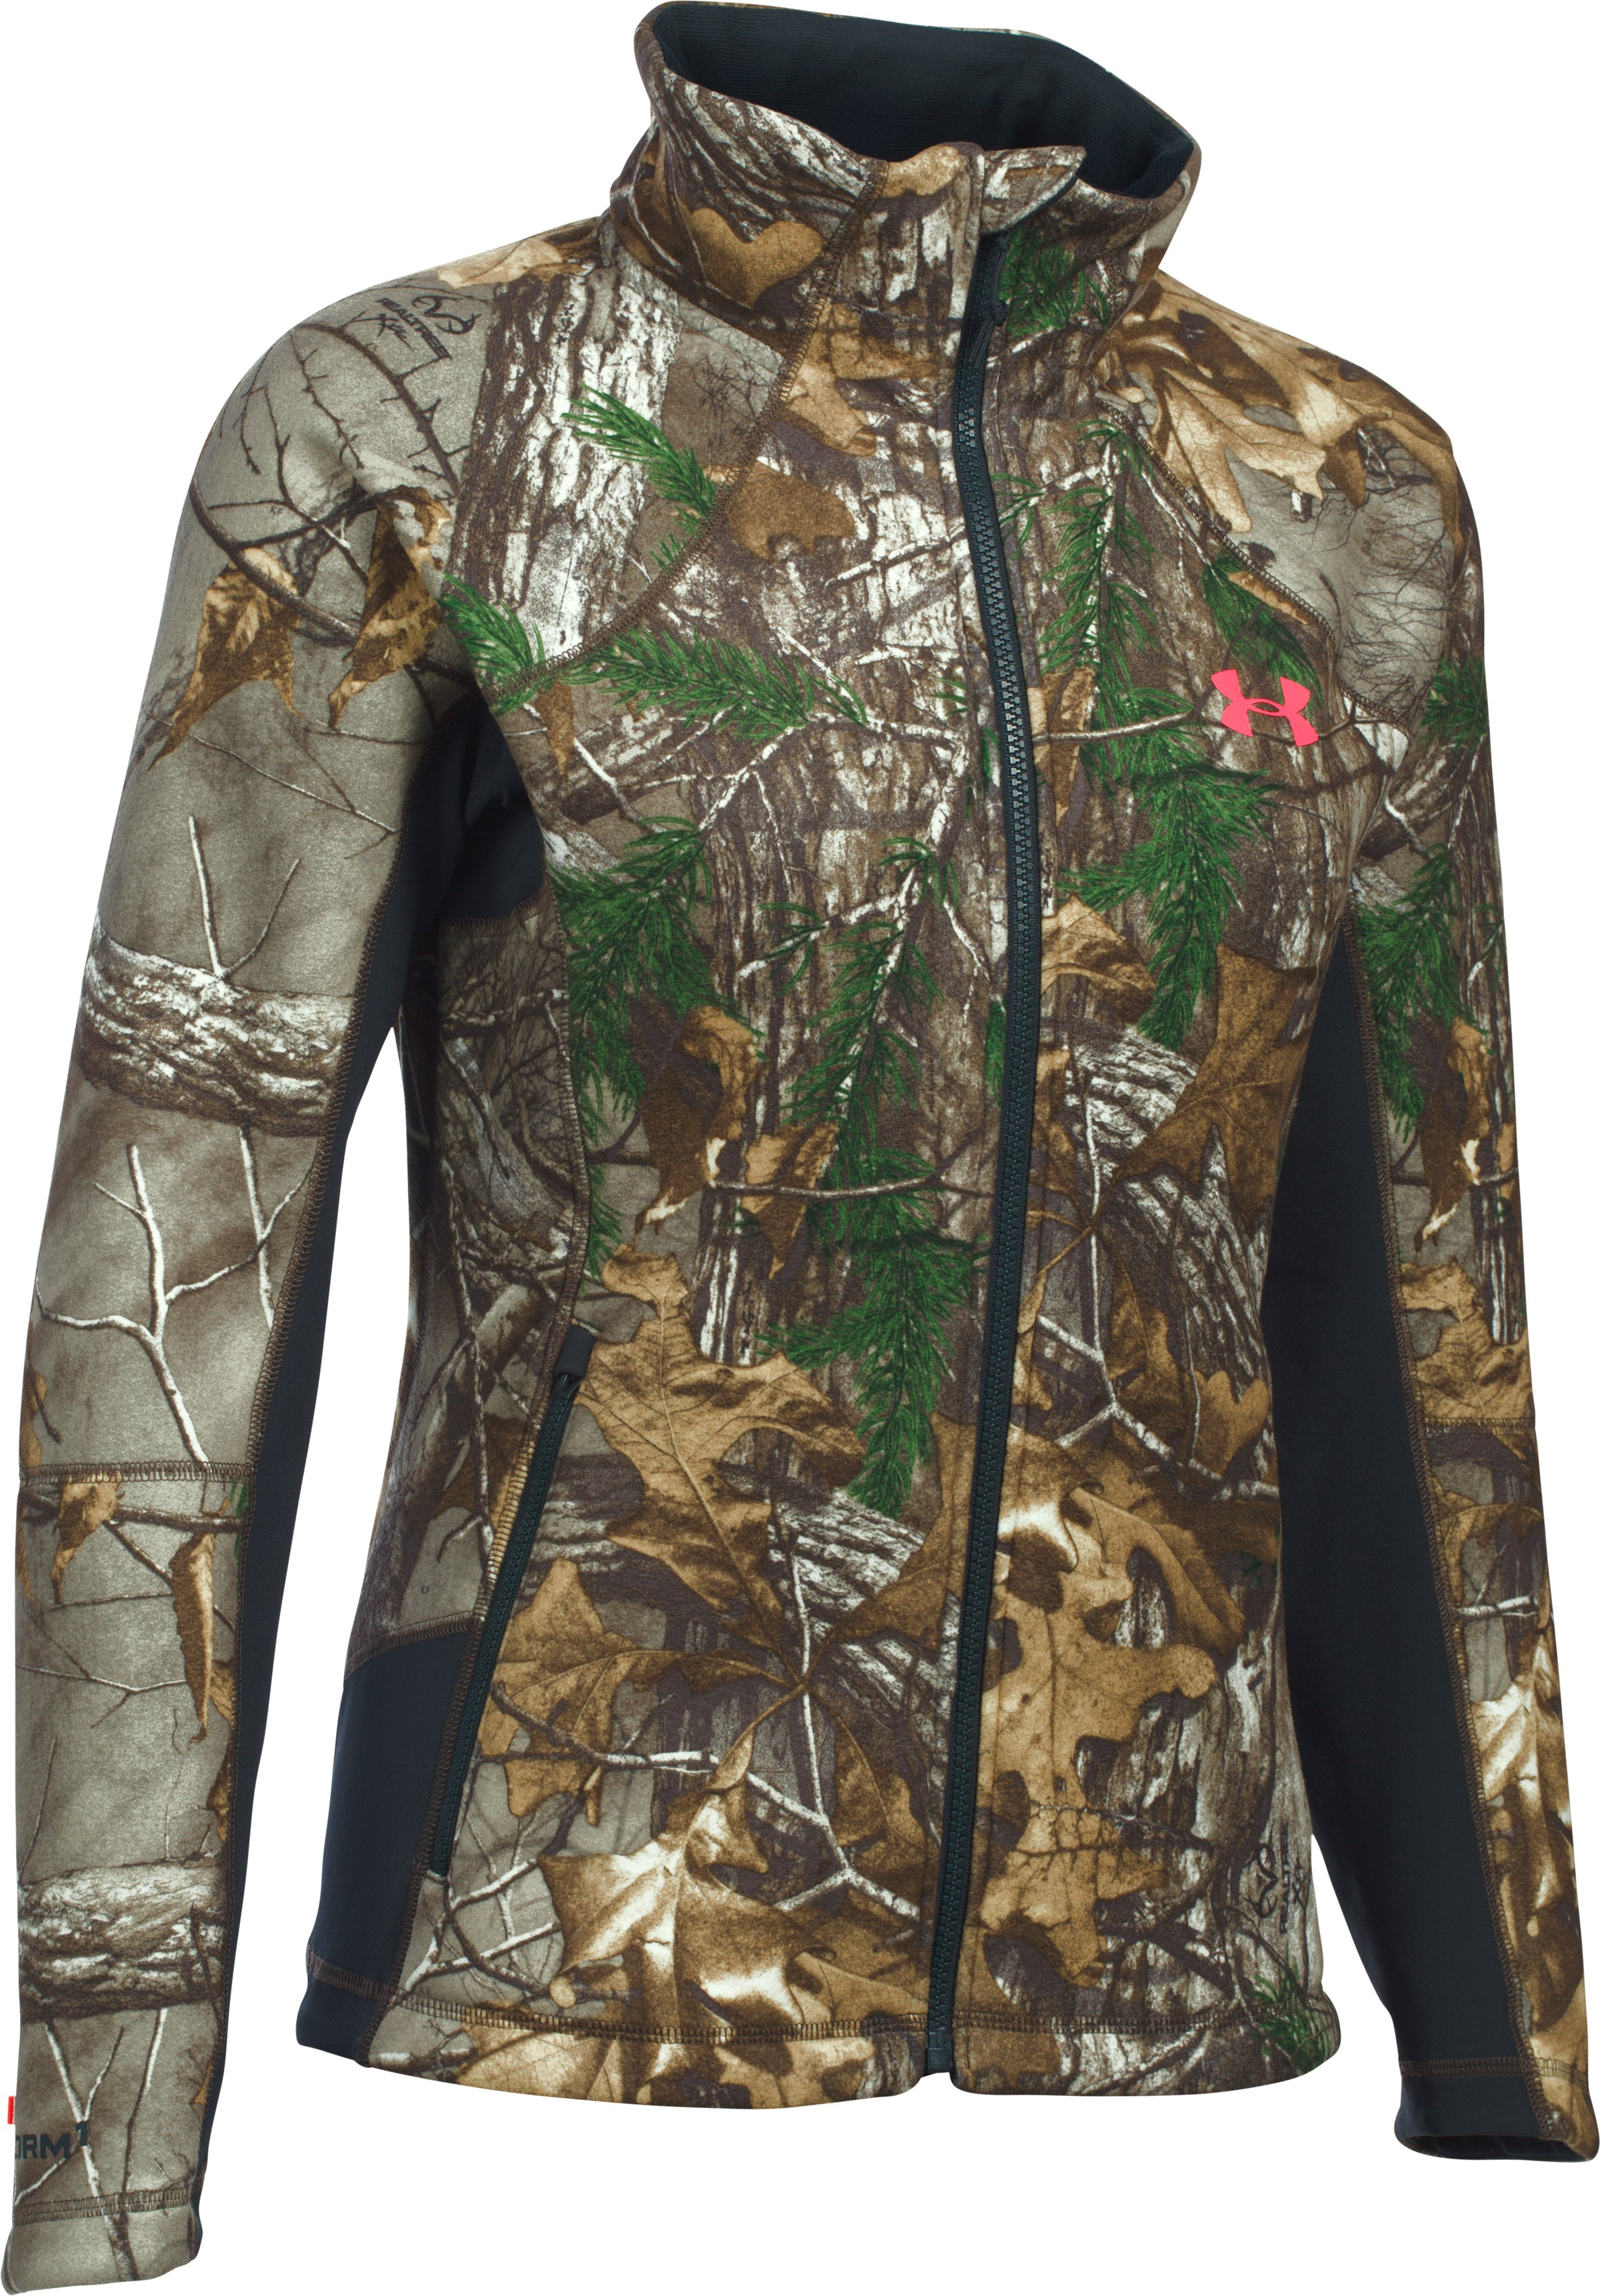 Women's UA Stealth Jacket, REALTREE AP-XTRA